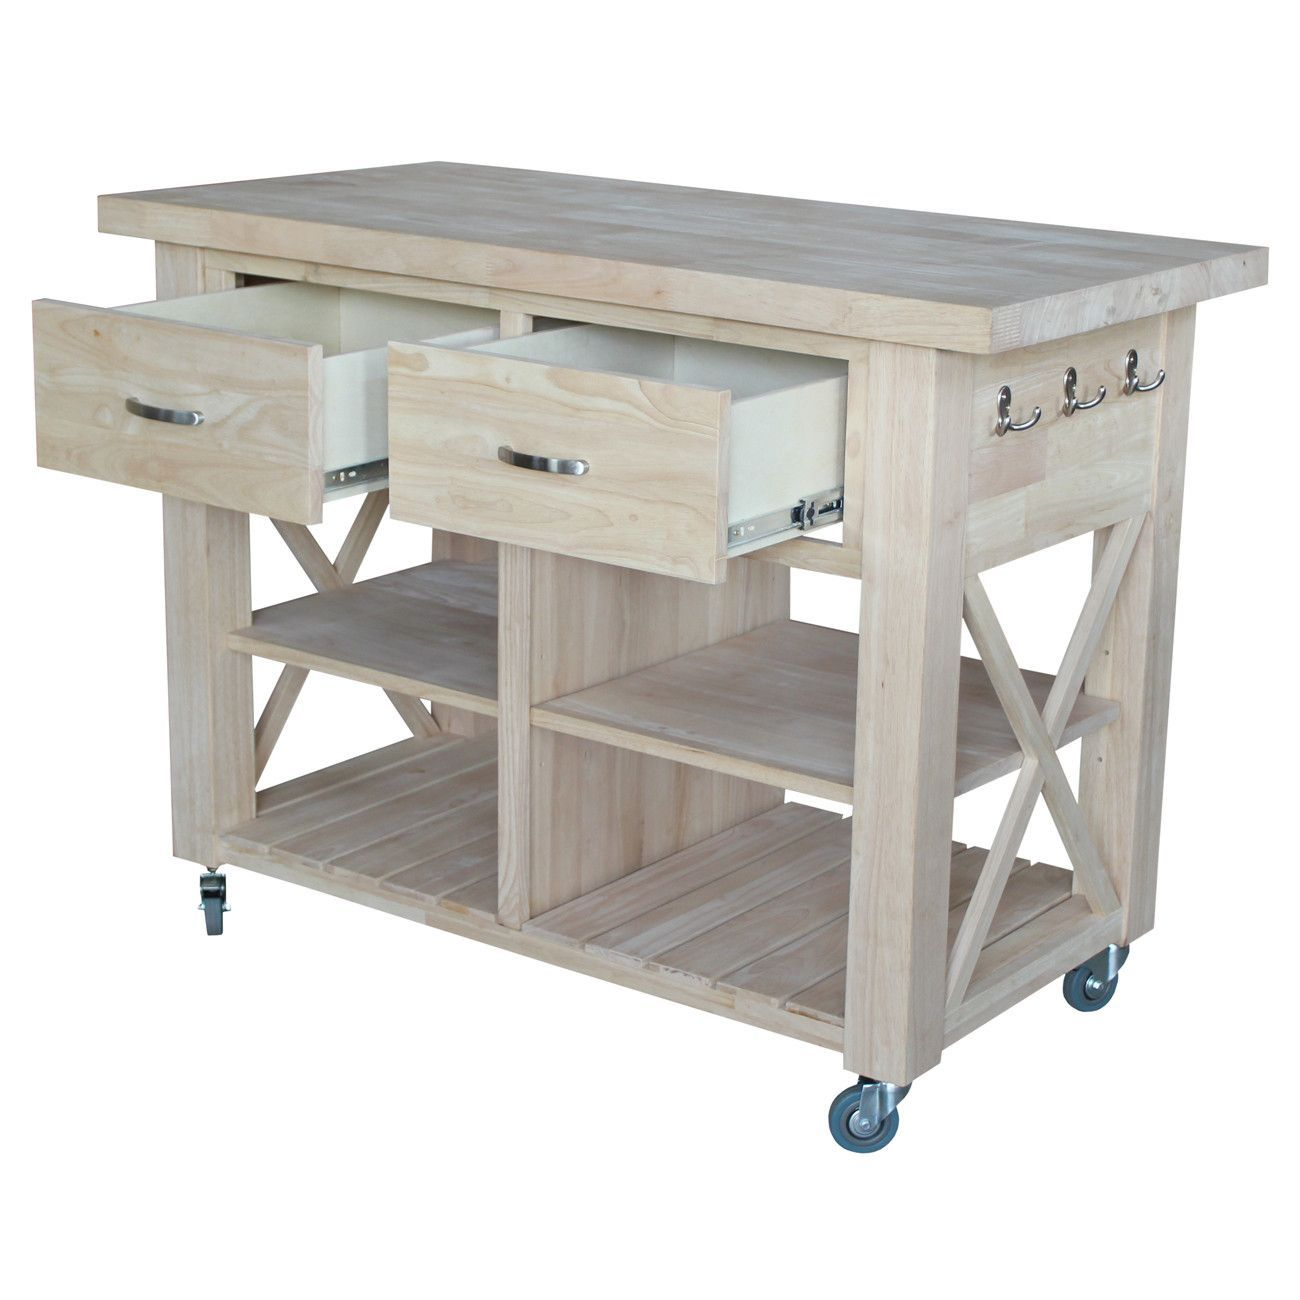 Buy Furniture Online Free Shipping: Unfinished X-Side Kitchen Island - 48""